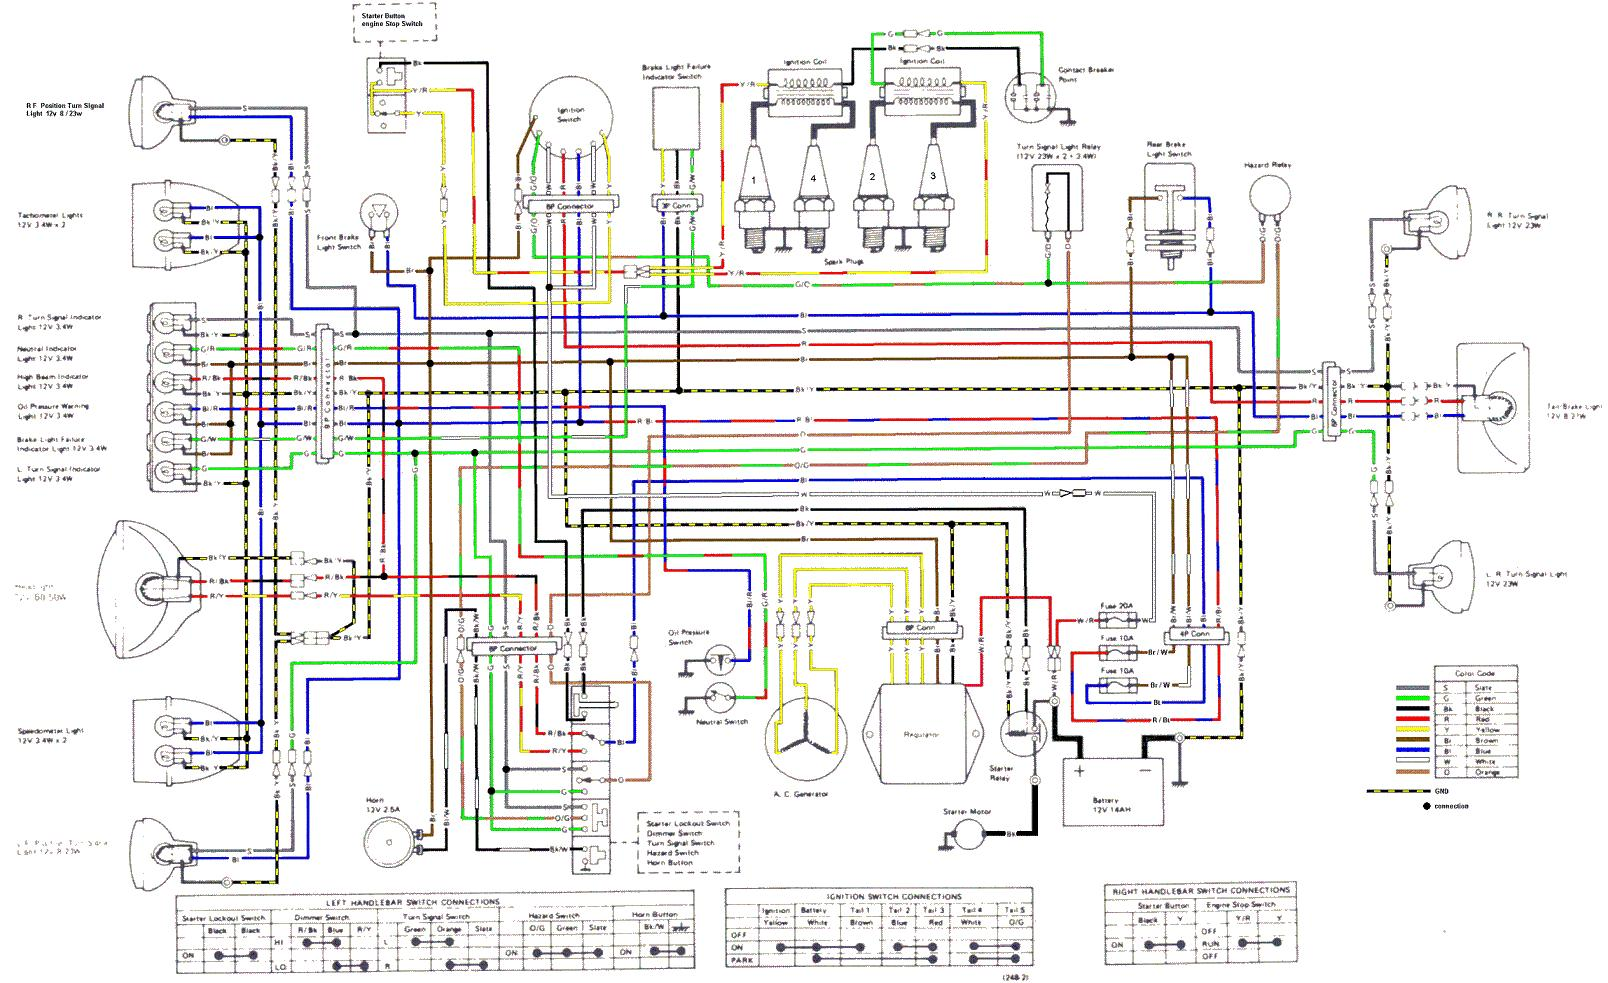 1982 kz1000 ltd wiring diagram wire 4 way switch need diagrams for a 1979 kzrider forum